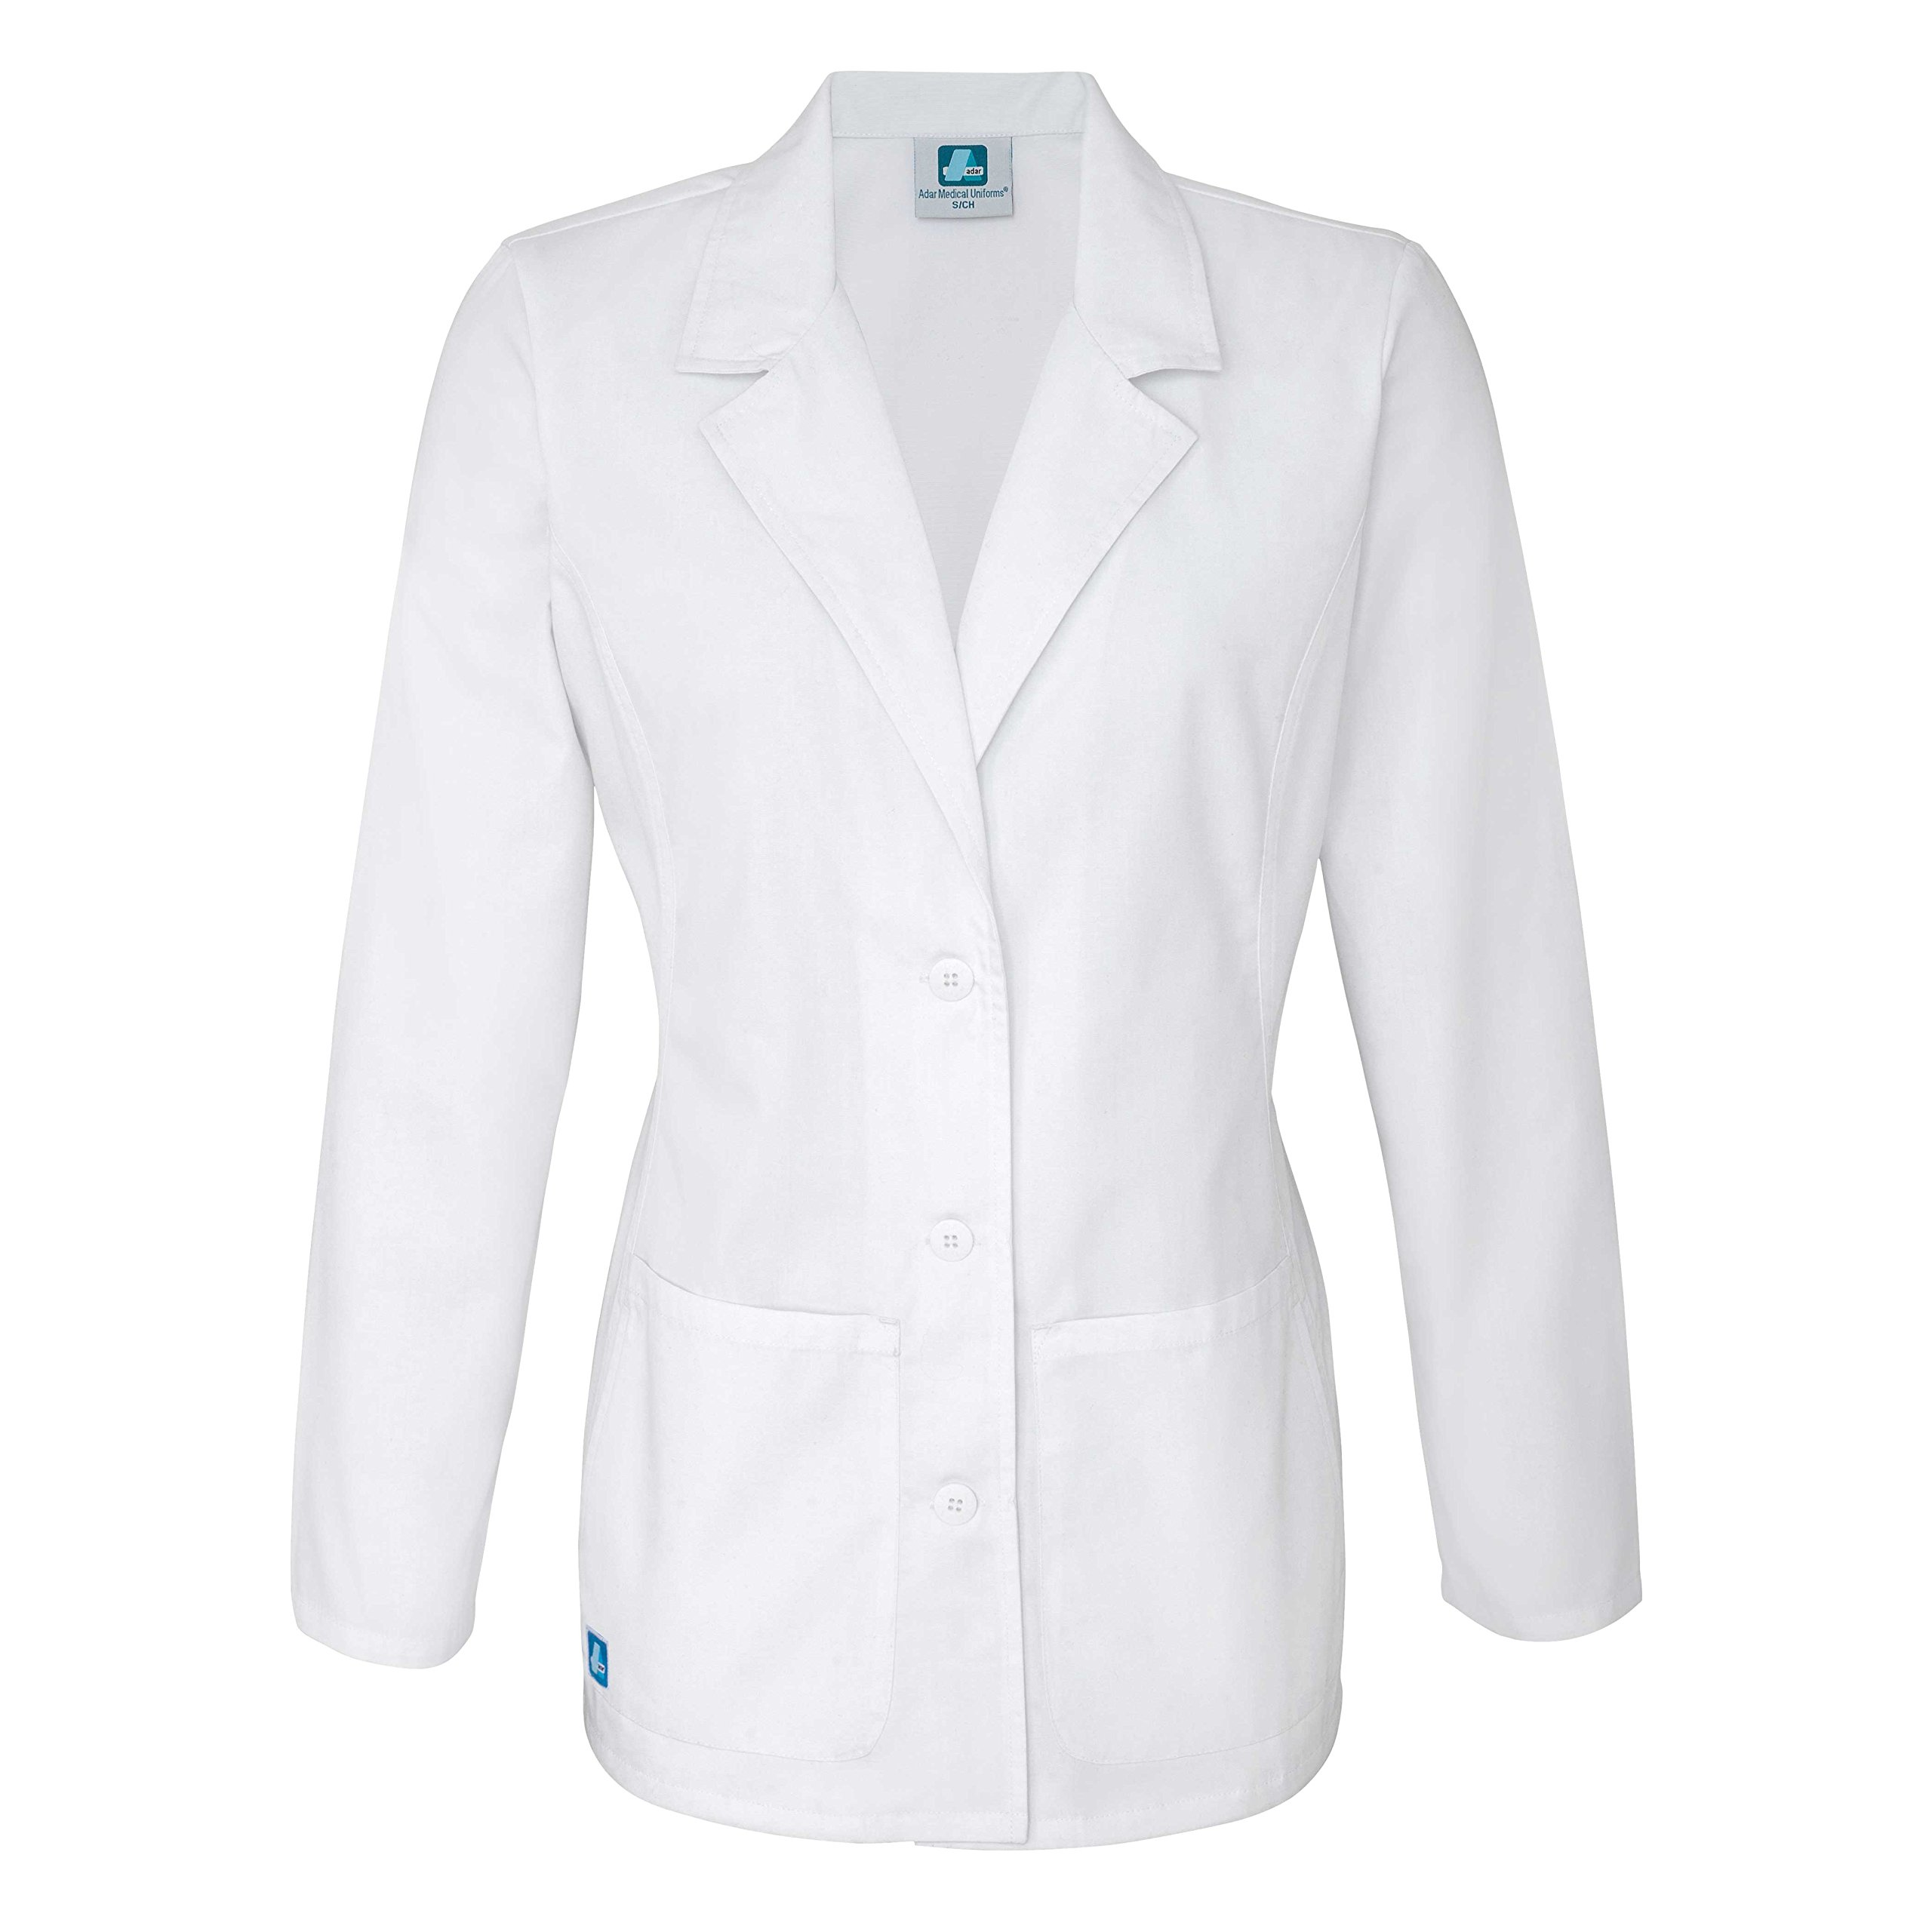 Adar Universal Women's 28'' Tailored Consultation Coat - 2814 - White - XXS